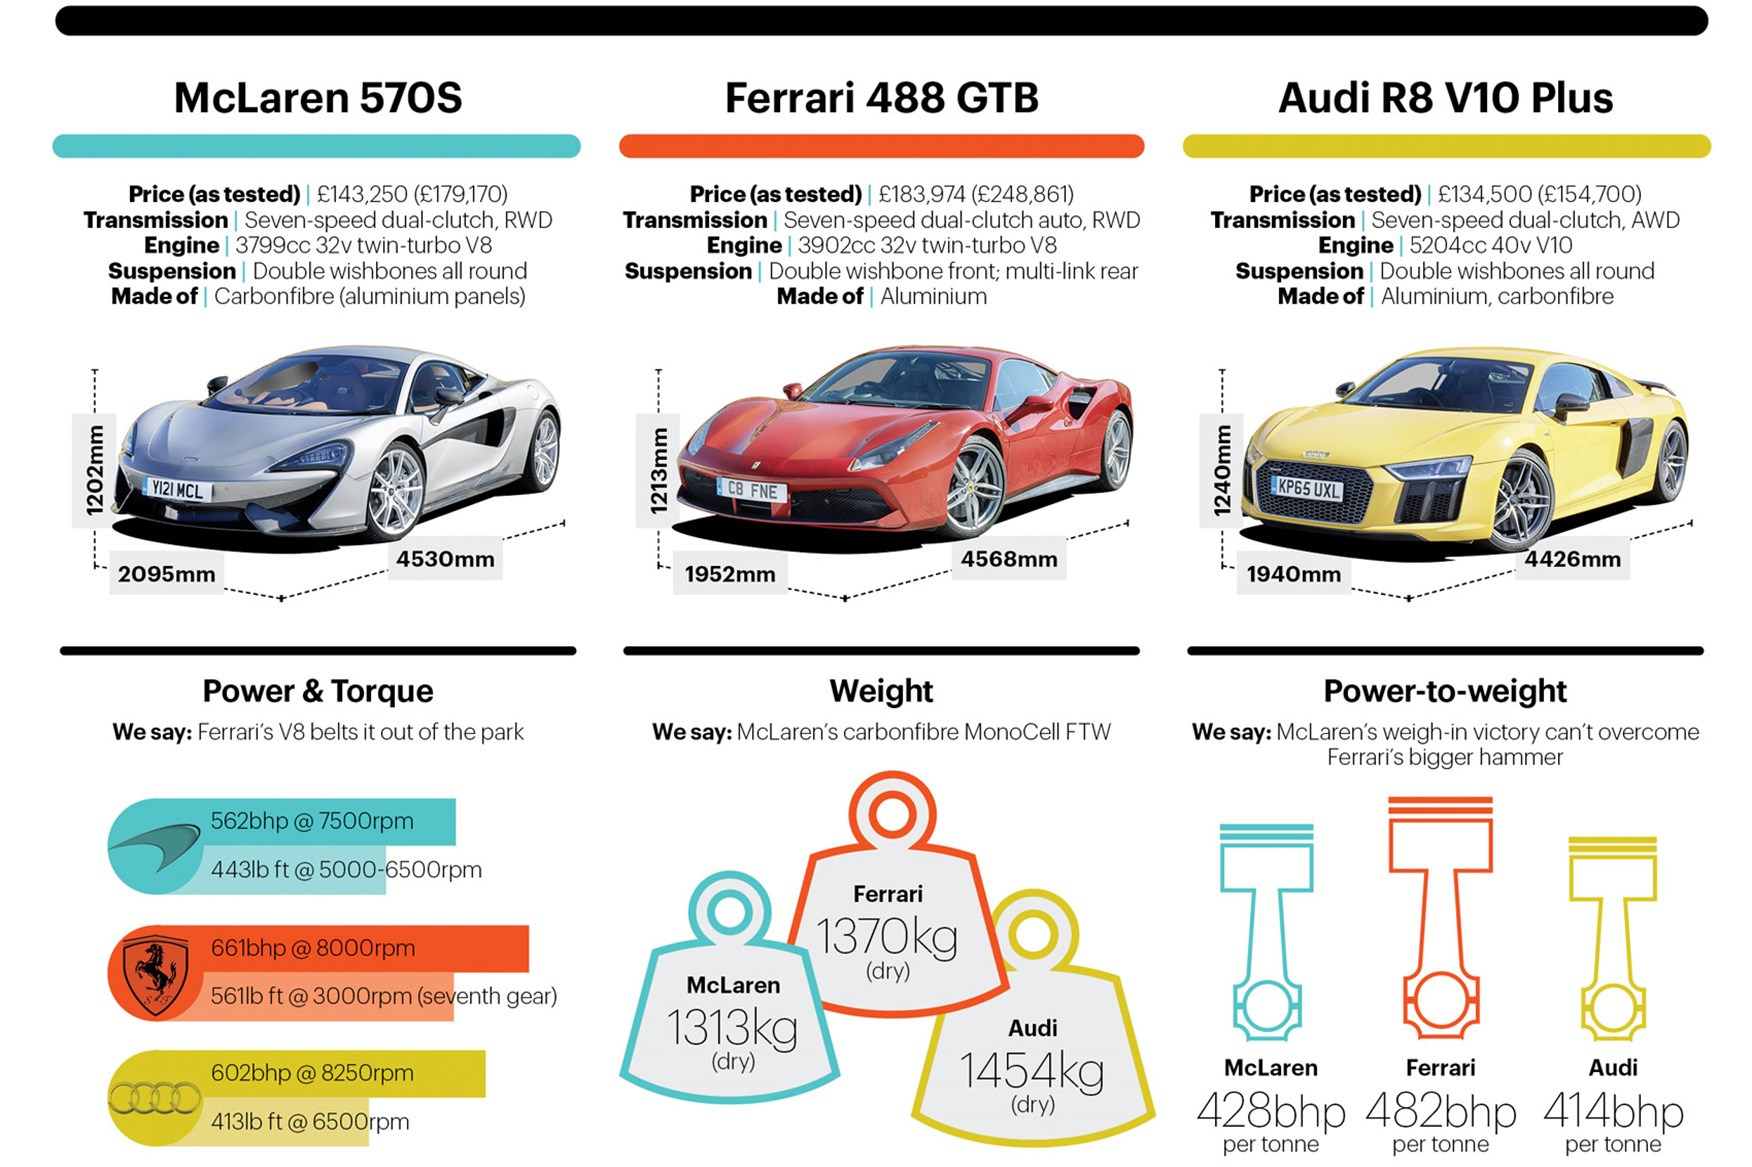 Our kind of EU summit: Ferrari 488 GTB vs McLaren 570S vs Audi R8 V10 Plus | CAR Magazine